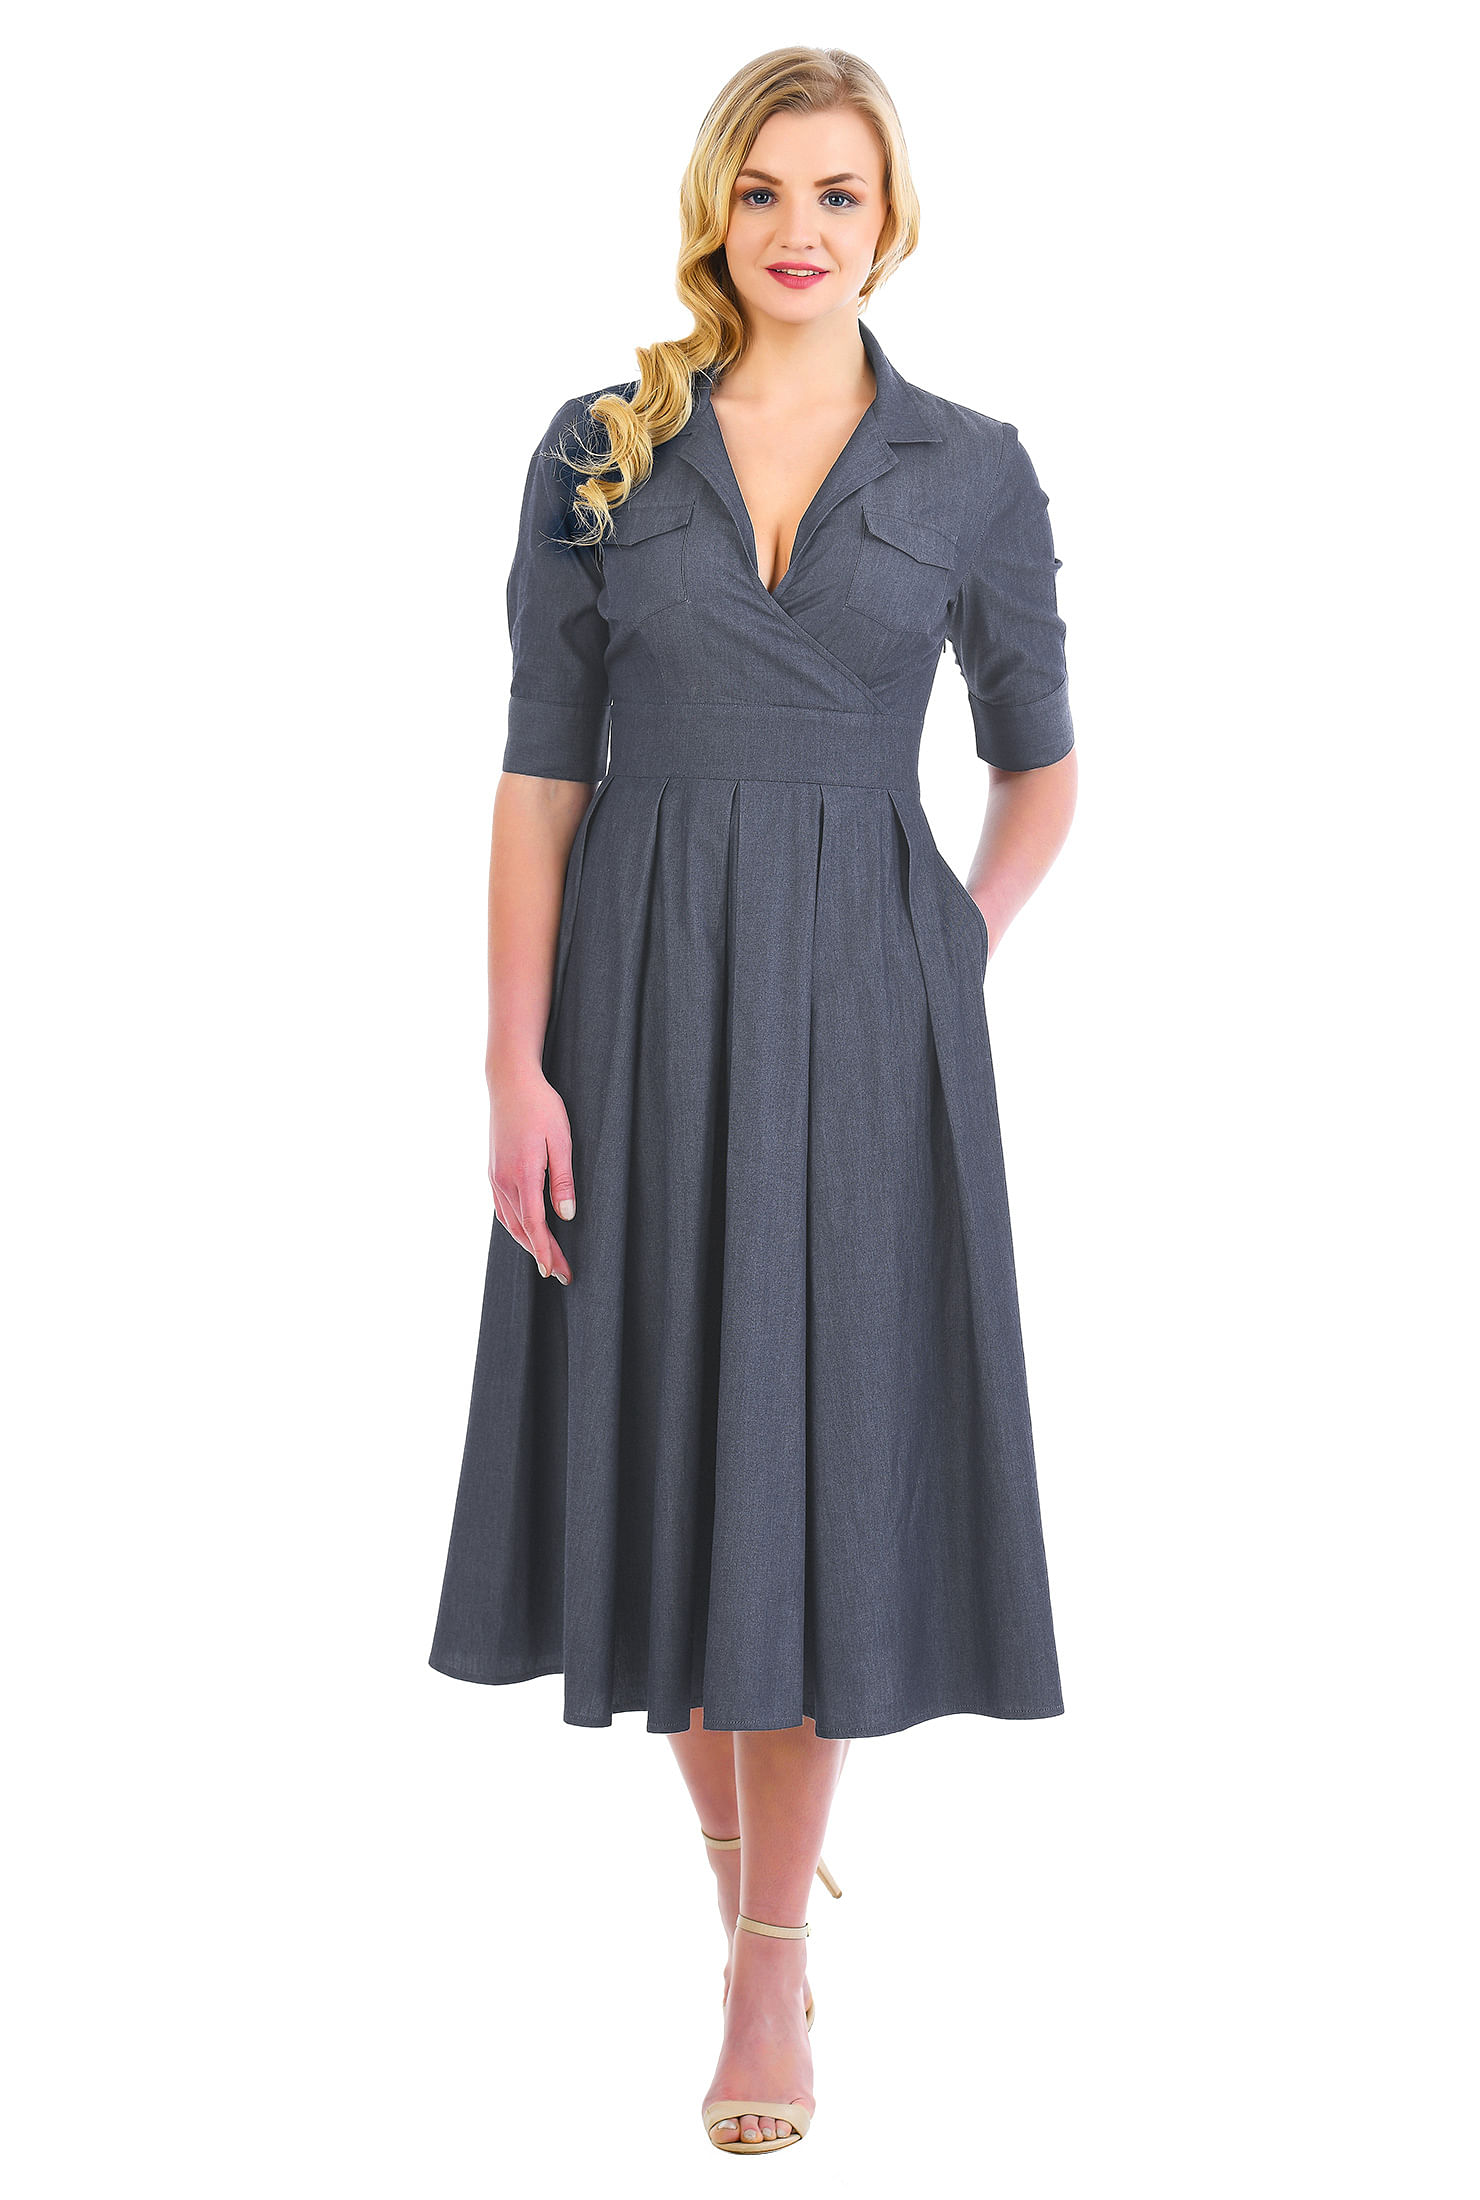 eShakti Women's Surplice cotton chambray shirtdress